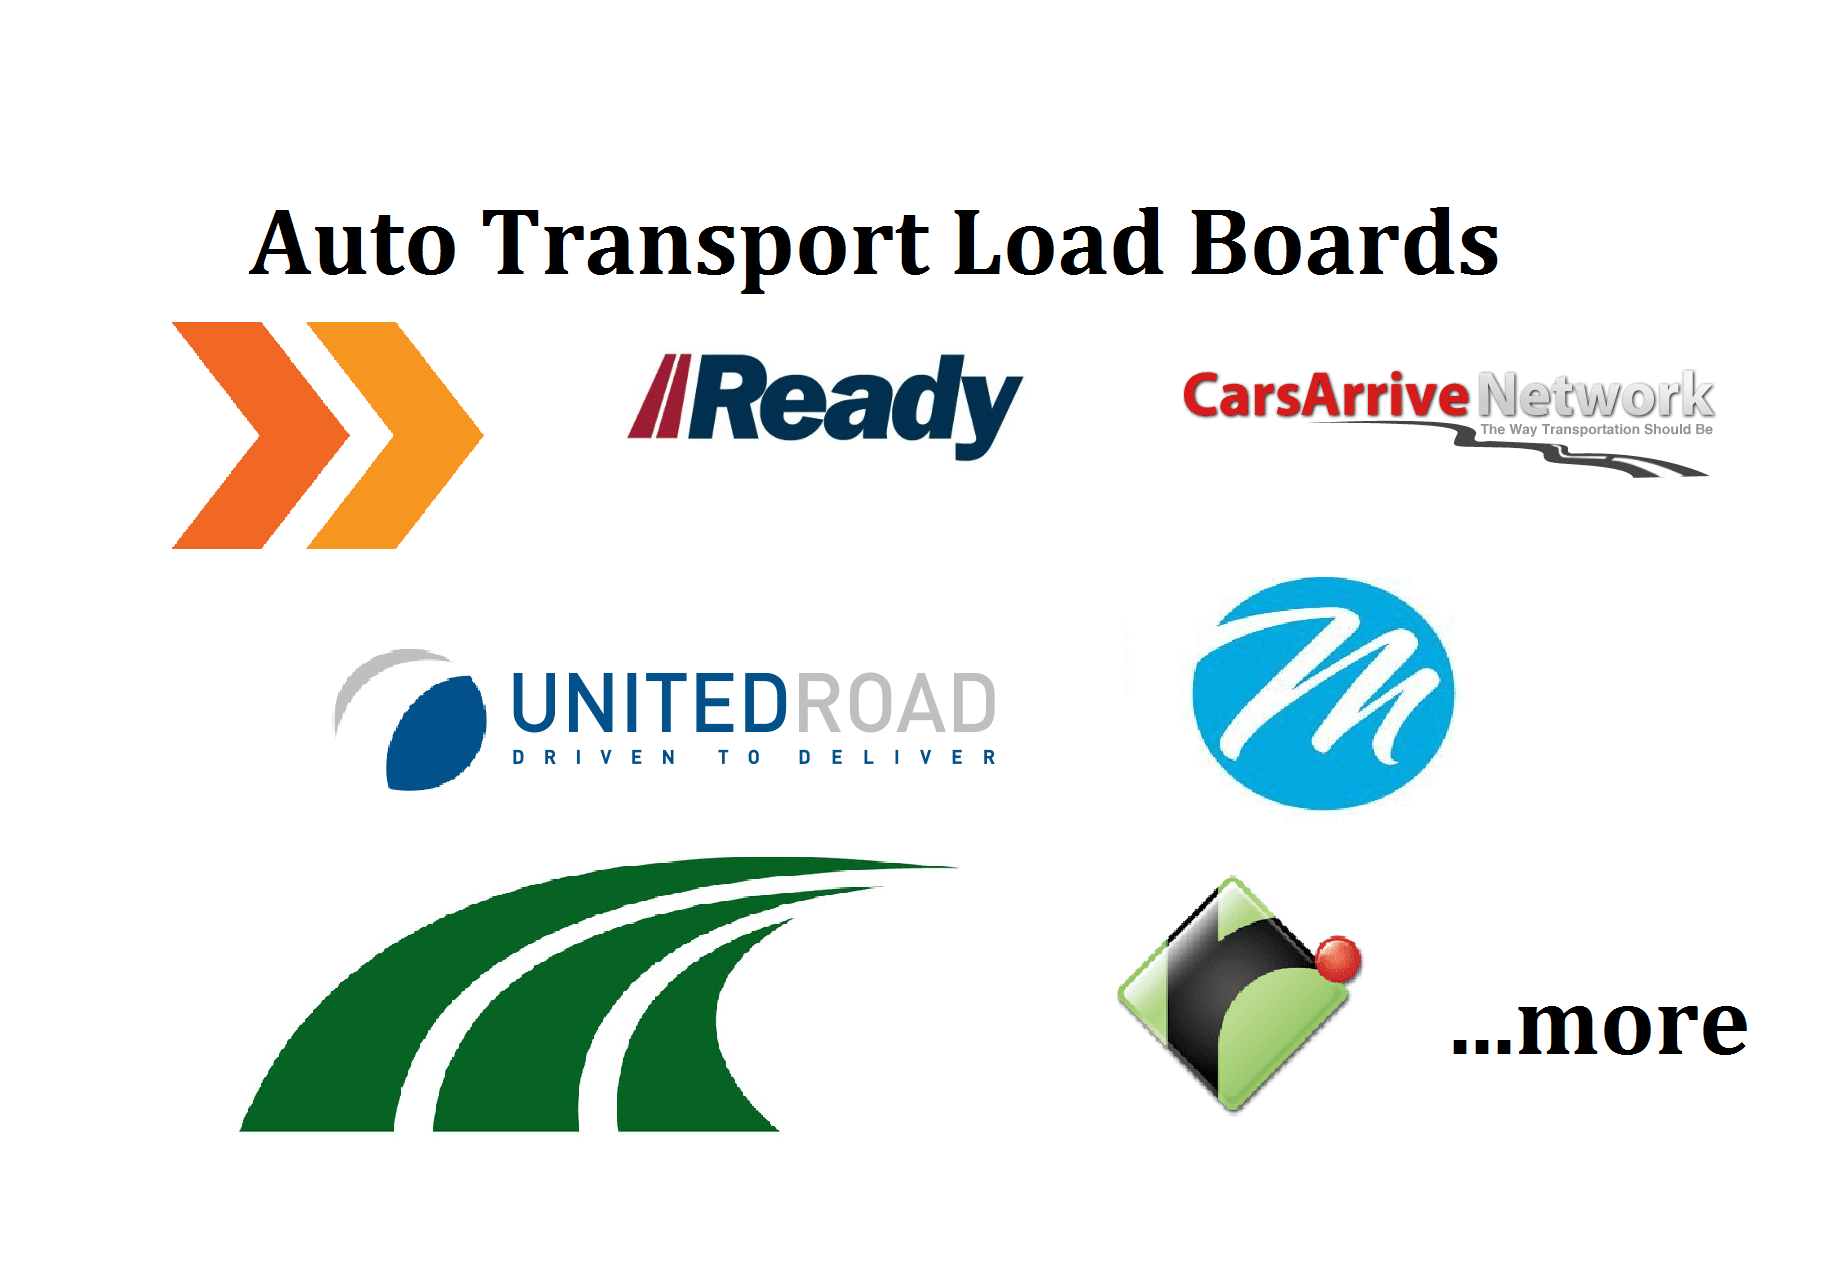 Auto Transport Load Board List for Car Haulers